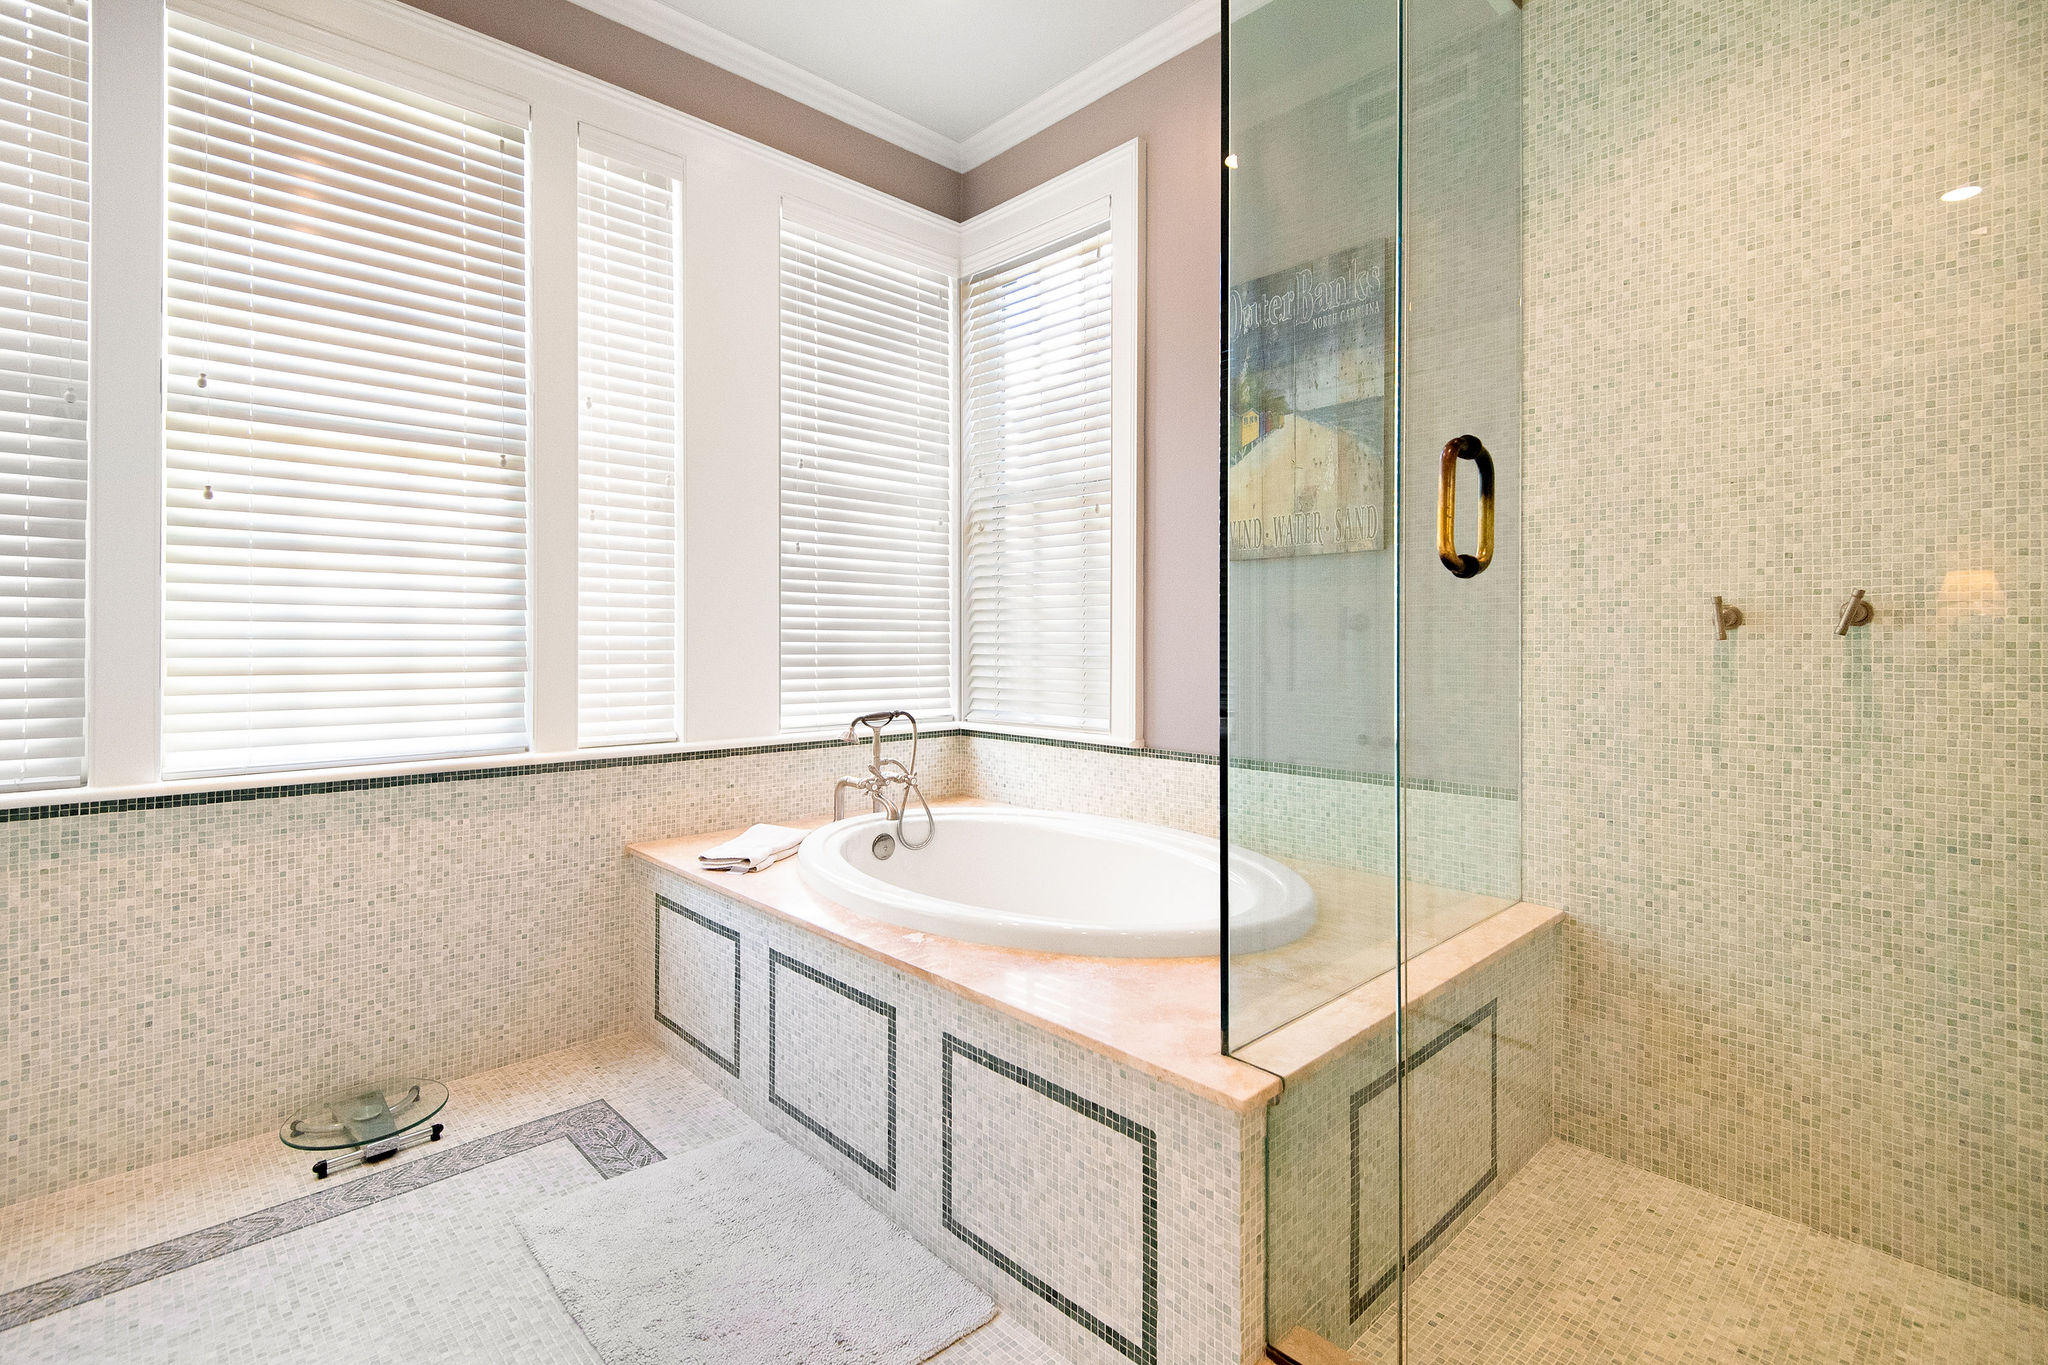 South of Broad Homes For Sale - 54 Tradd, Charleston, SC - 55